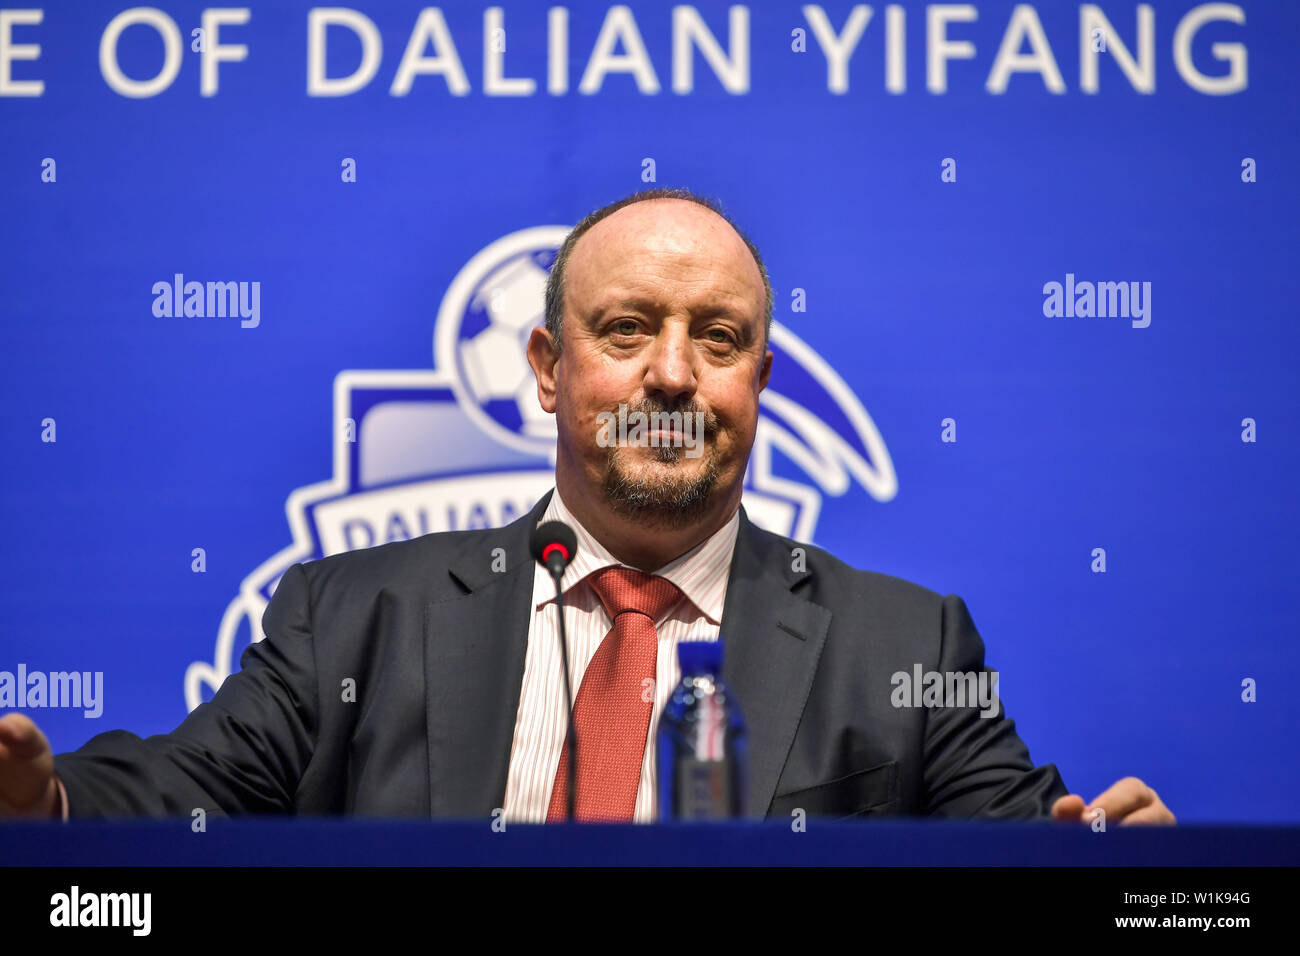 Spanish football manager Rafa Benitez, the new-appointed head coach of China's Dalian Yifang F.C., attends a press conference in Dalian city, northeast China's Liaoning province, 2 July 2019. Former Newcastle United manager Rafa Benitez is reportedly set to move to China to take charge of Chinese Super League side Dalian Yifang, after the departure of Choi Kang-hee. Sky Sports reported that the 59-year-old Spaniard has agreed a contract with Dalian which doubles the six million pounds a year he earned at St James's Park, and will be introduced as the new boss on Tuesday. Dalian announced late - Stock Image